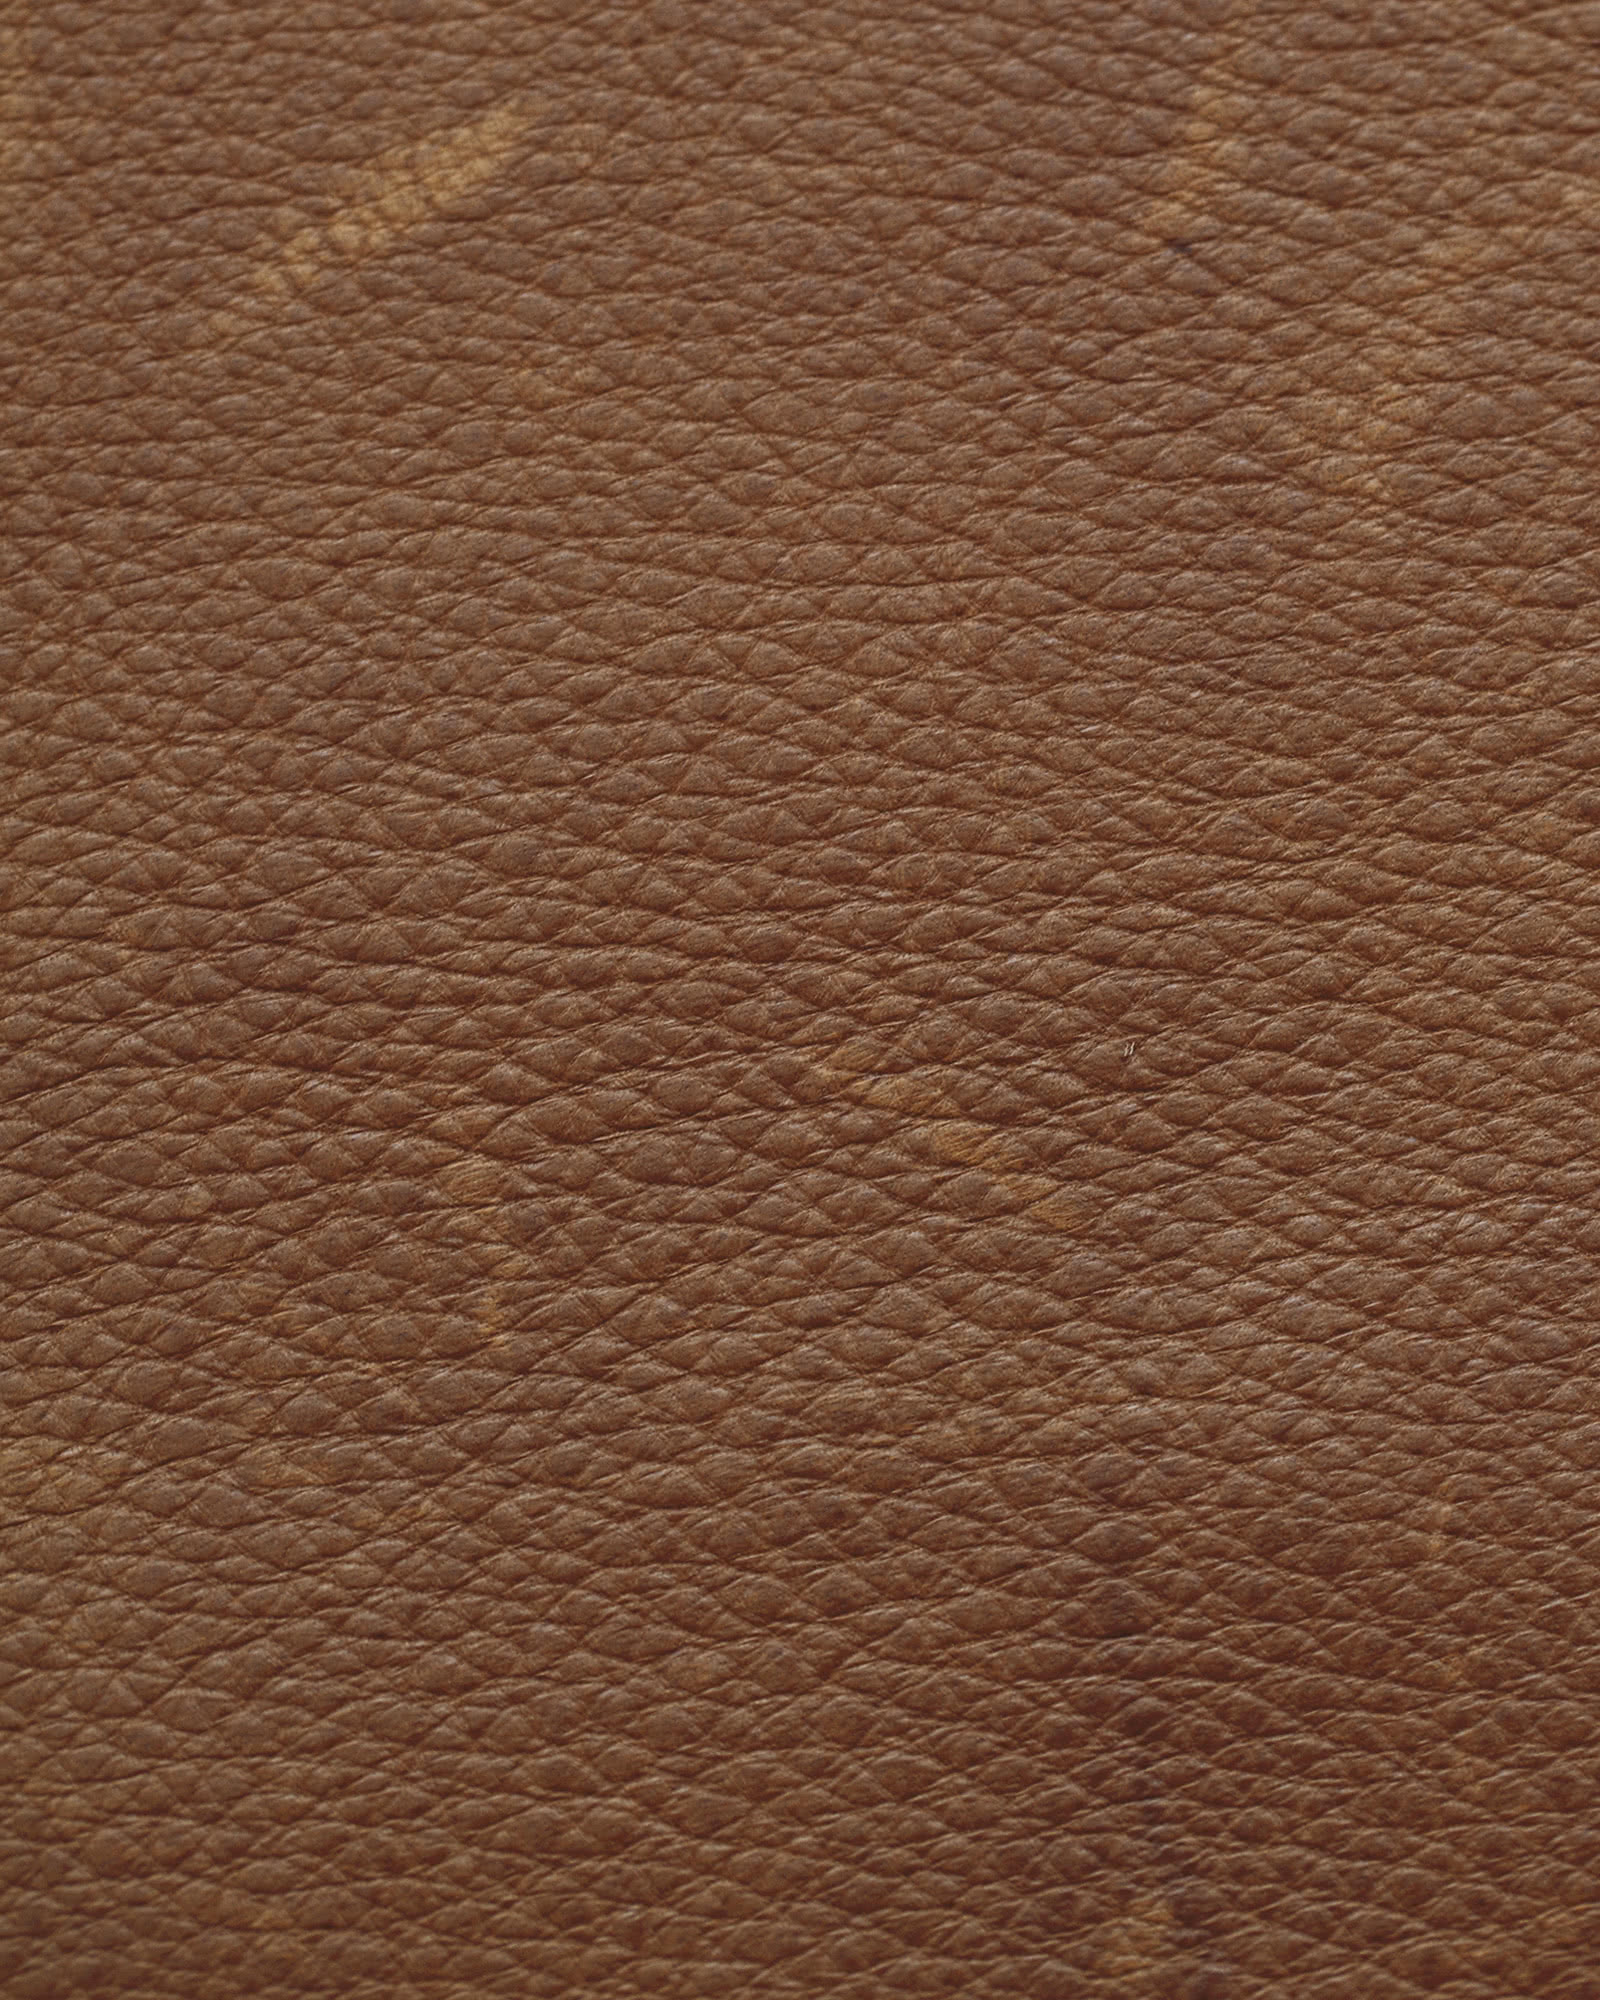 Pebbled Leather - Dark Pine,